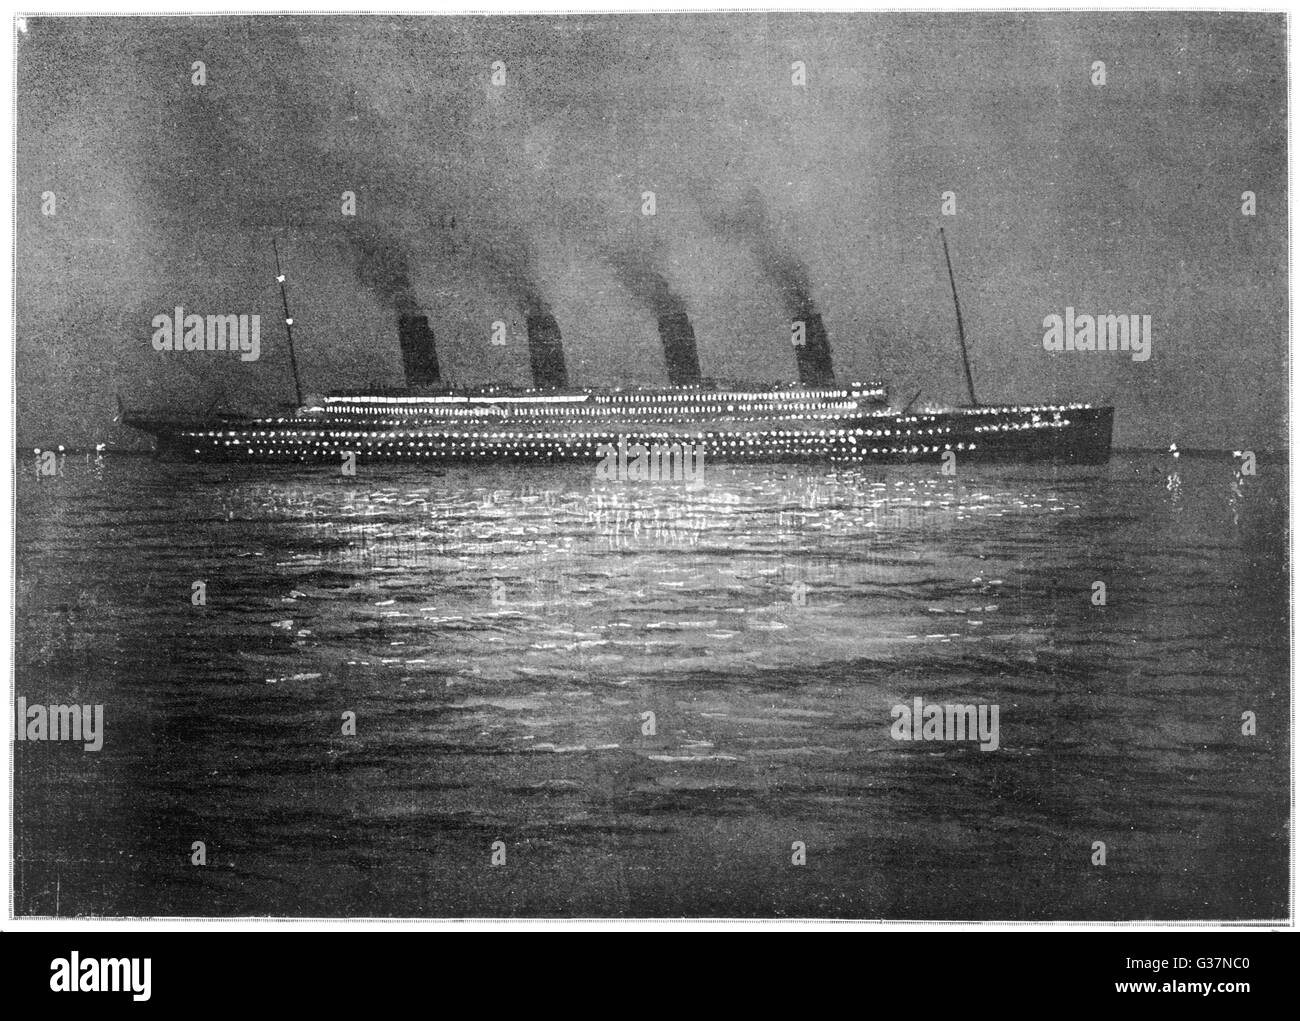 The SS Titanic seen at night  whilst visiting Cherbourg on  the evening of 10th April  1912.       Date: 1912 - Stock Image